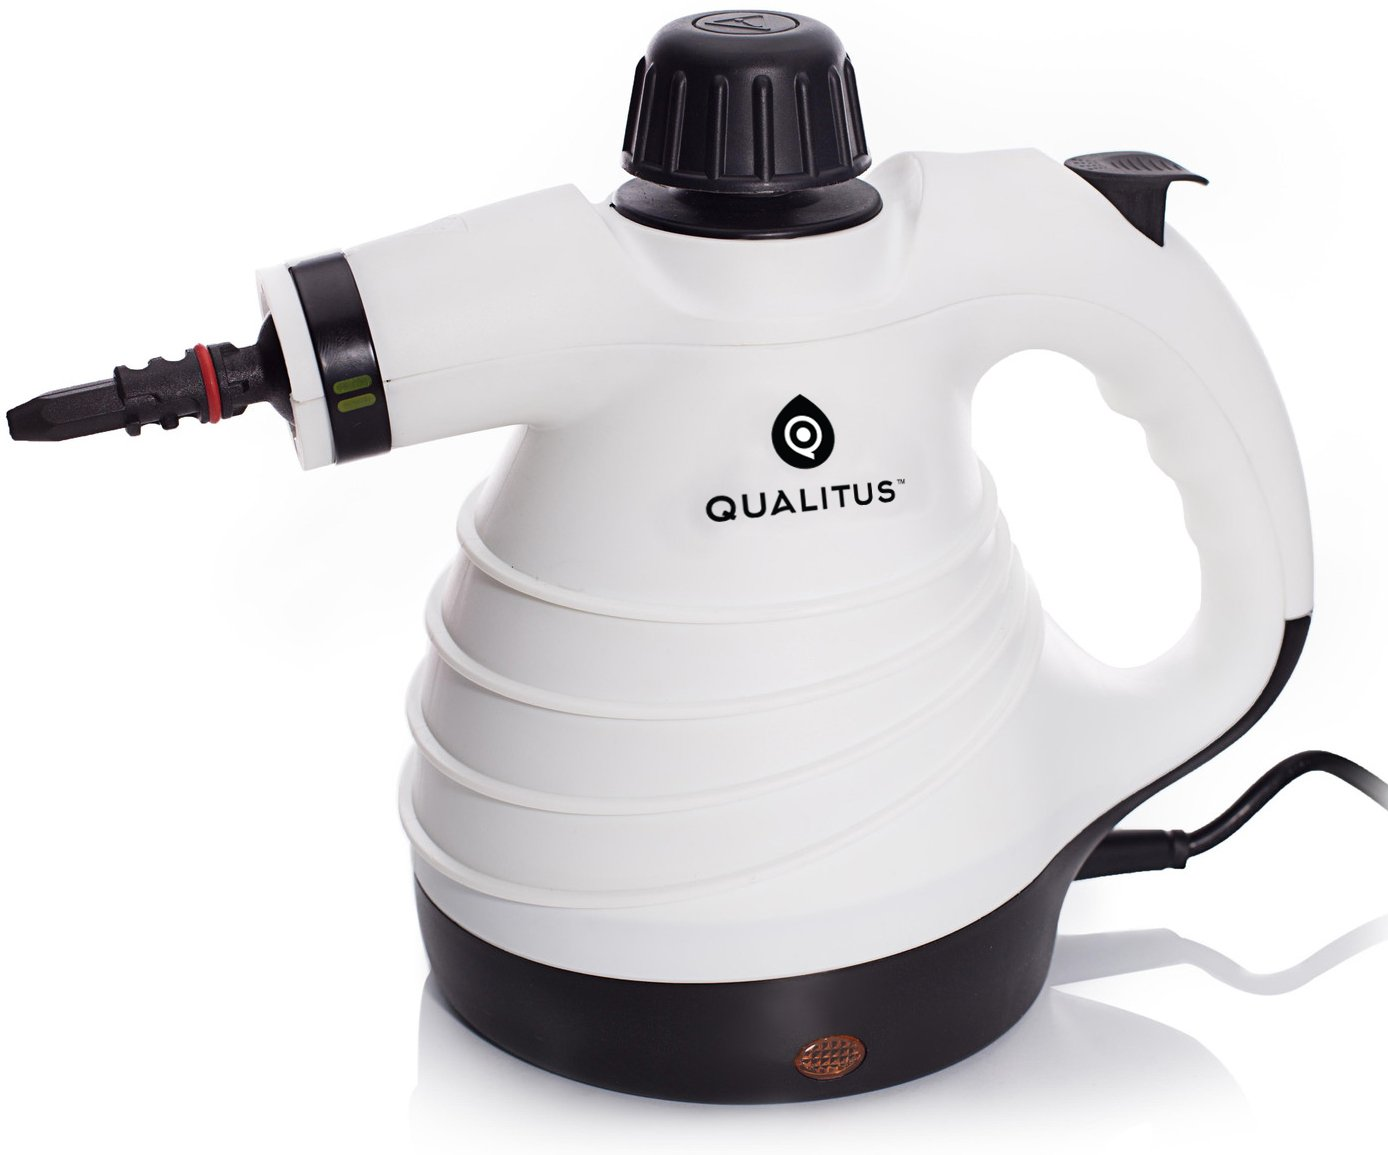 Qualitus Cleveland Steamer ETL Listed Handheld Multi-Purpose Pressurized Steam Cleaner & Sanitizing System w/ Attachments & Long 12 ft Cord - Perfect for Stain Removal, Curtains, Bathrooms, & more AX-AY-ABHI-118492